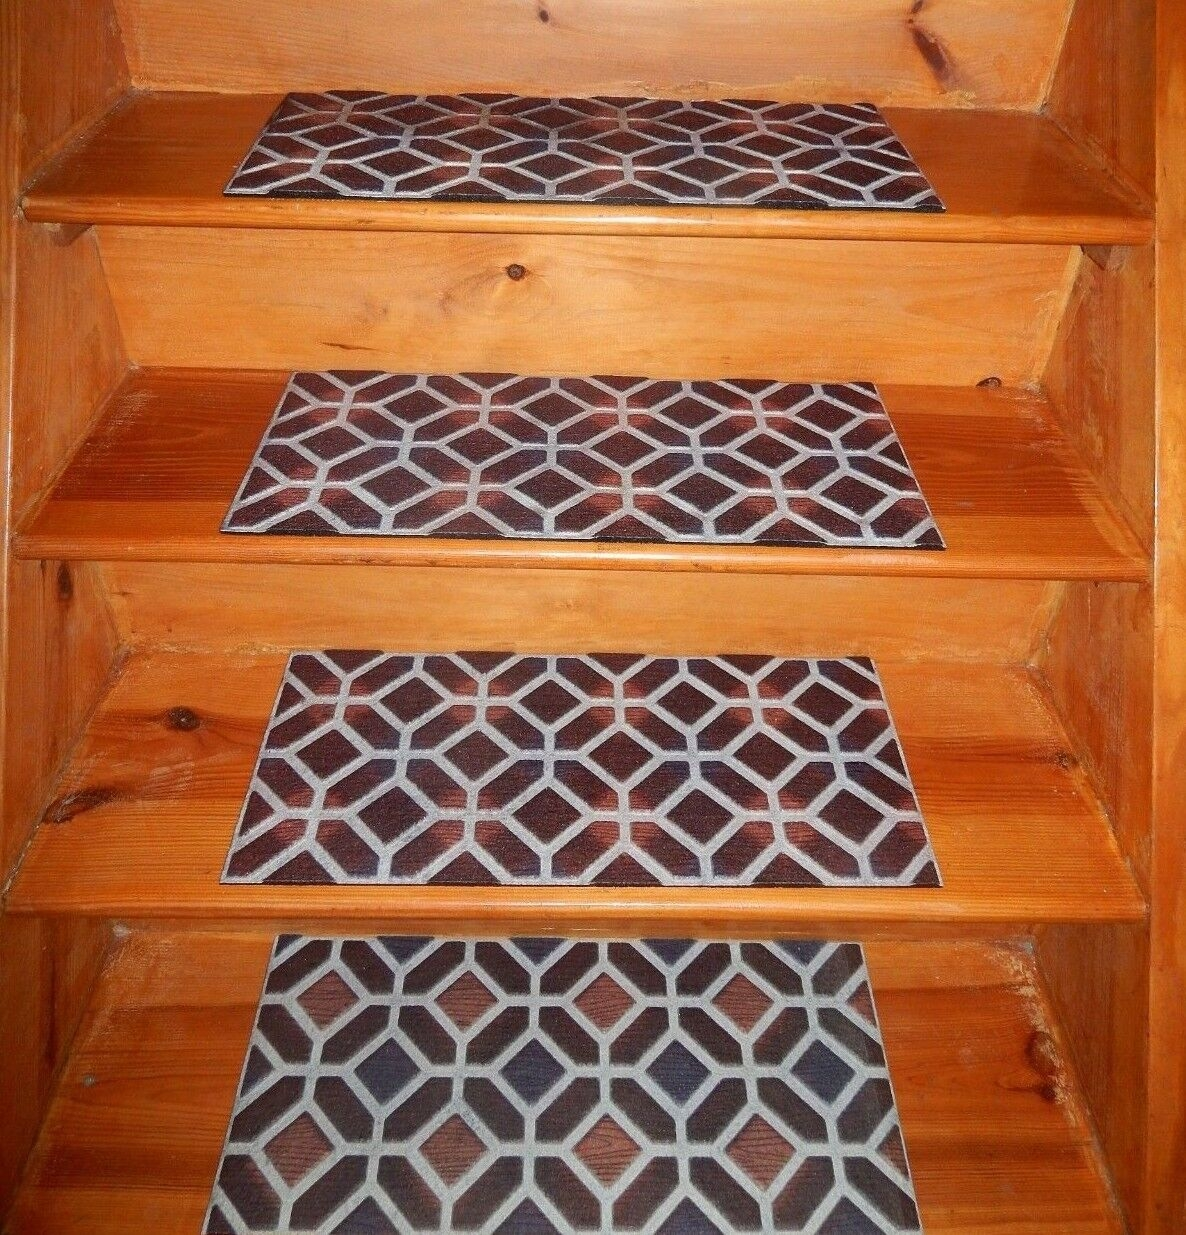 4 Step 10 X 24 100 Rubber Outdoor Stair Treads For Sale Online   Best Outdoor Stair Treads   Stair Stringers   Wood   Carpet   Spiral Staircase   Carpet Stair